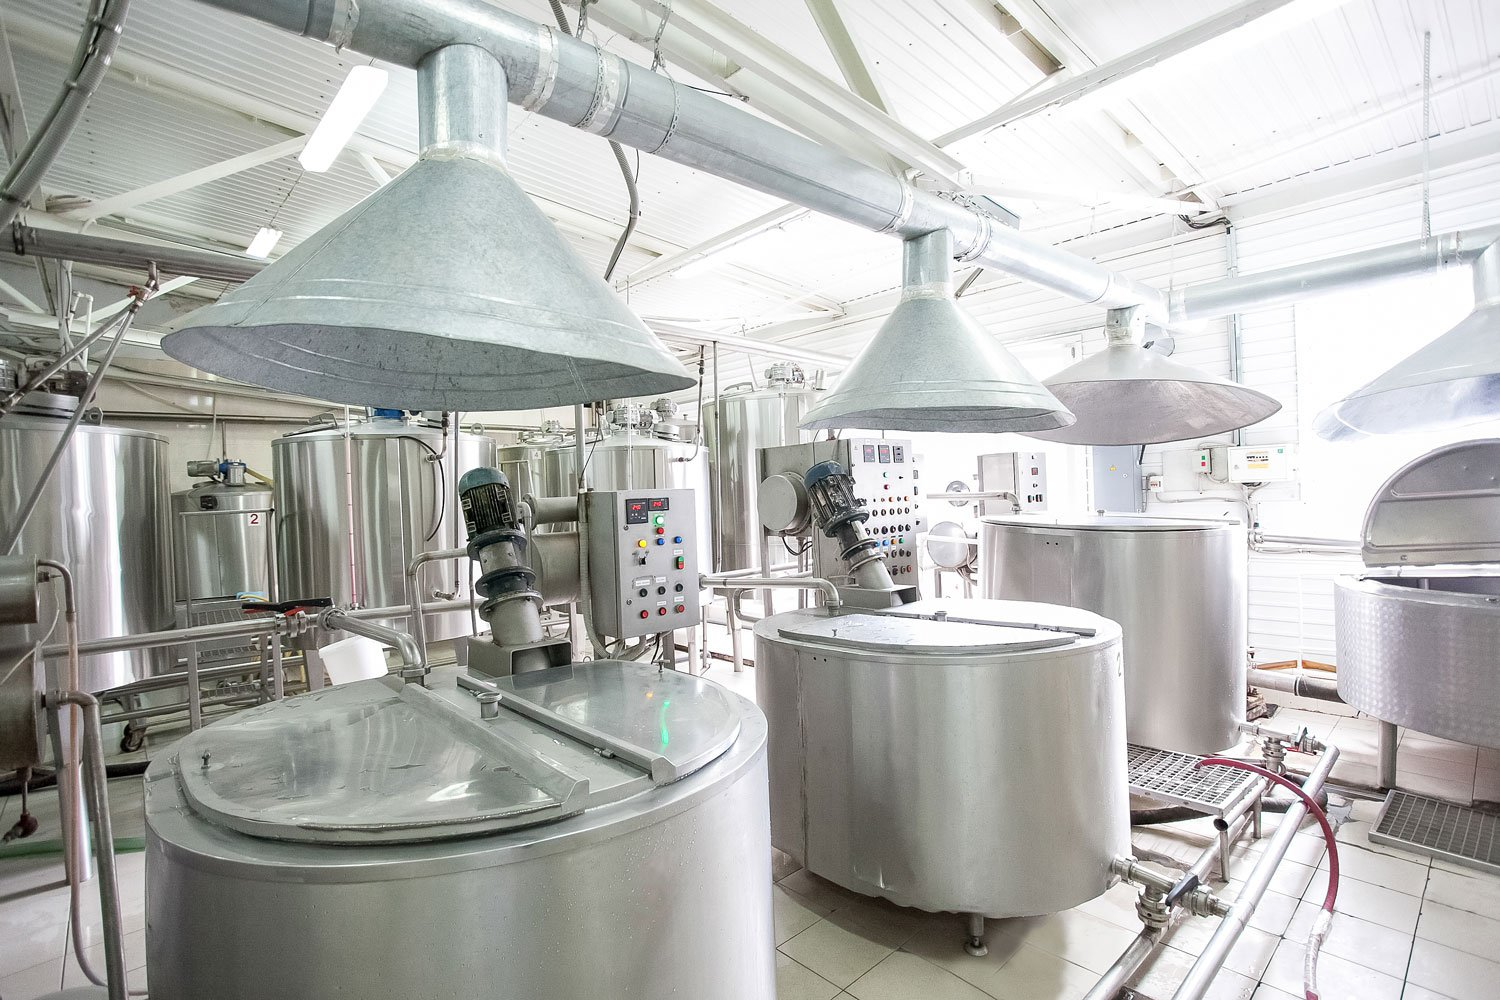 Food production facility with large metal vats and overhead ventilation